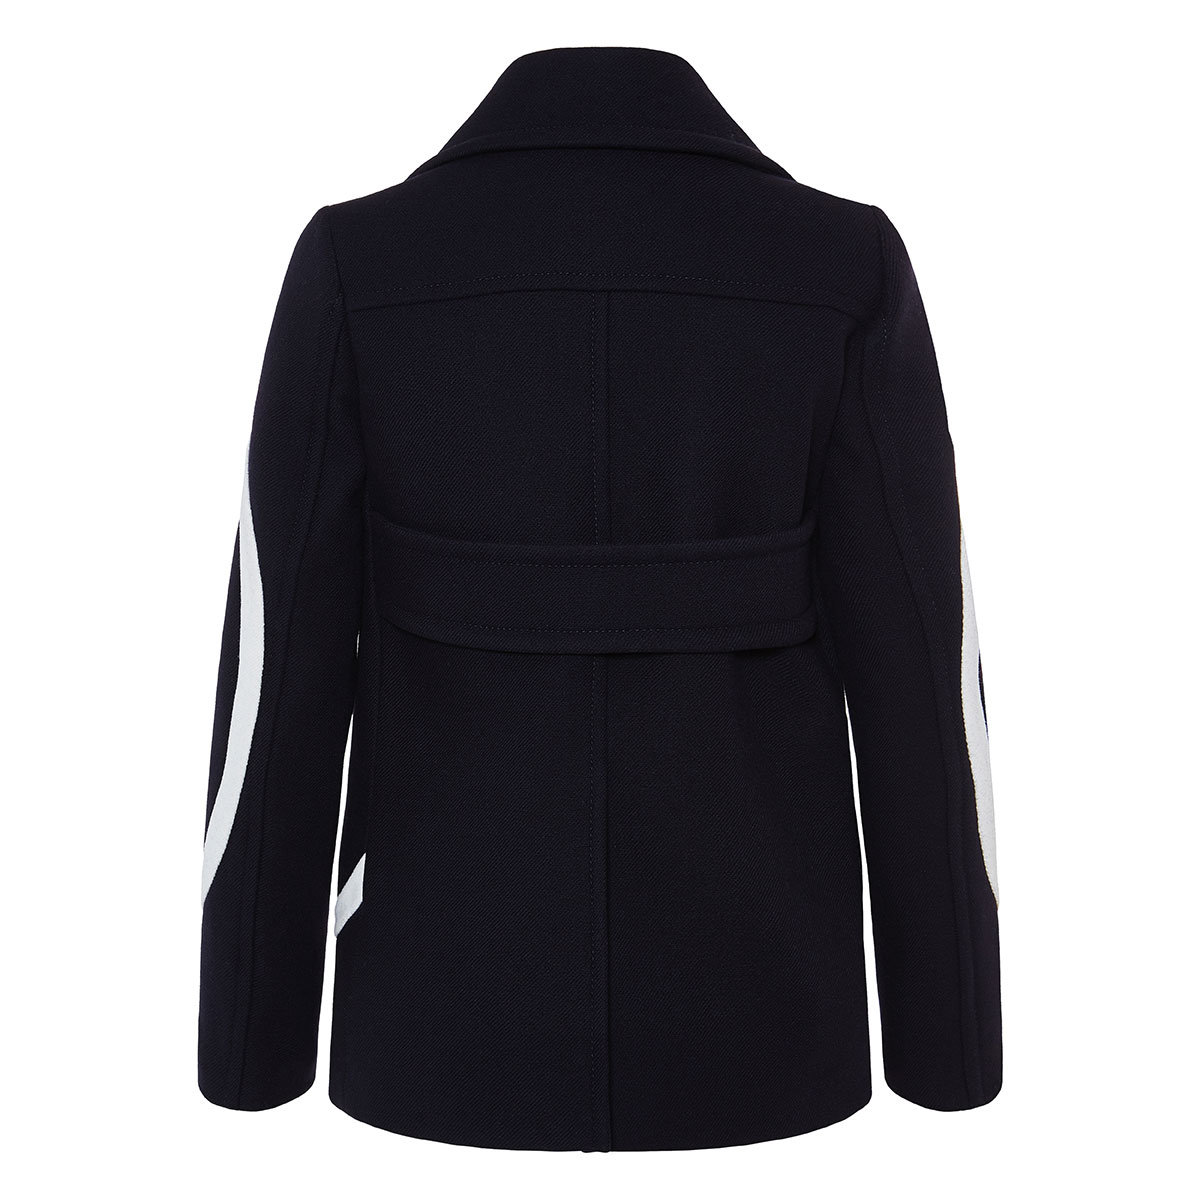 Vlogo double-breasted pea coat